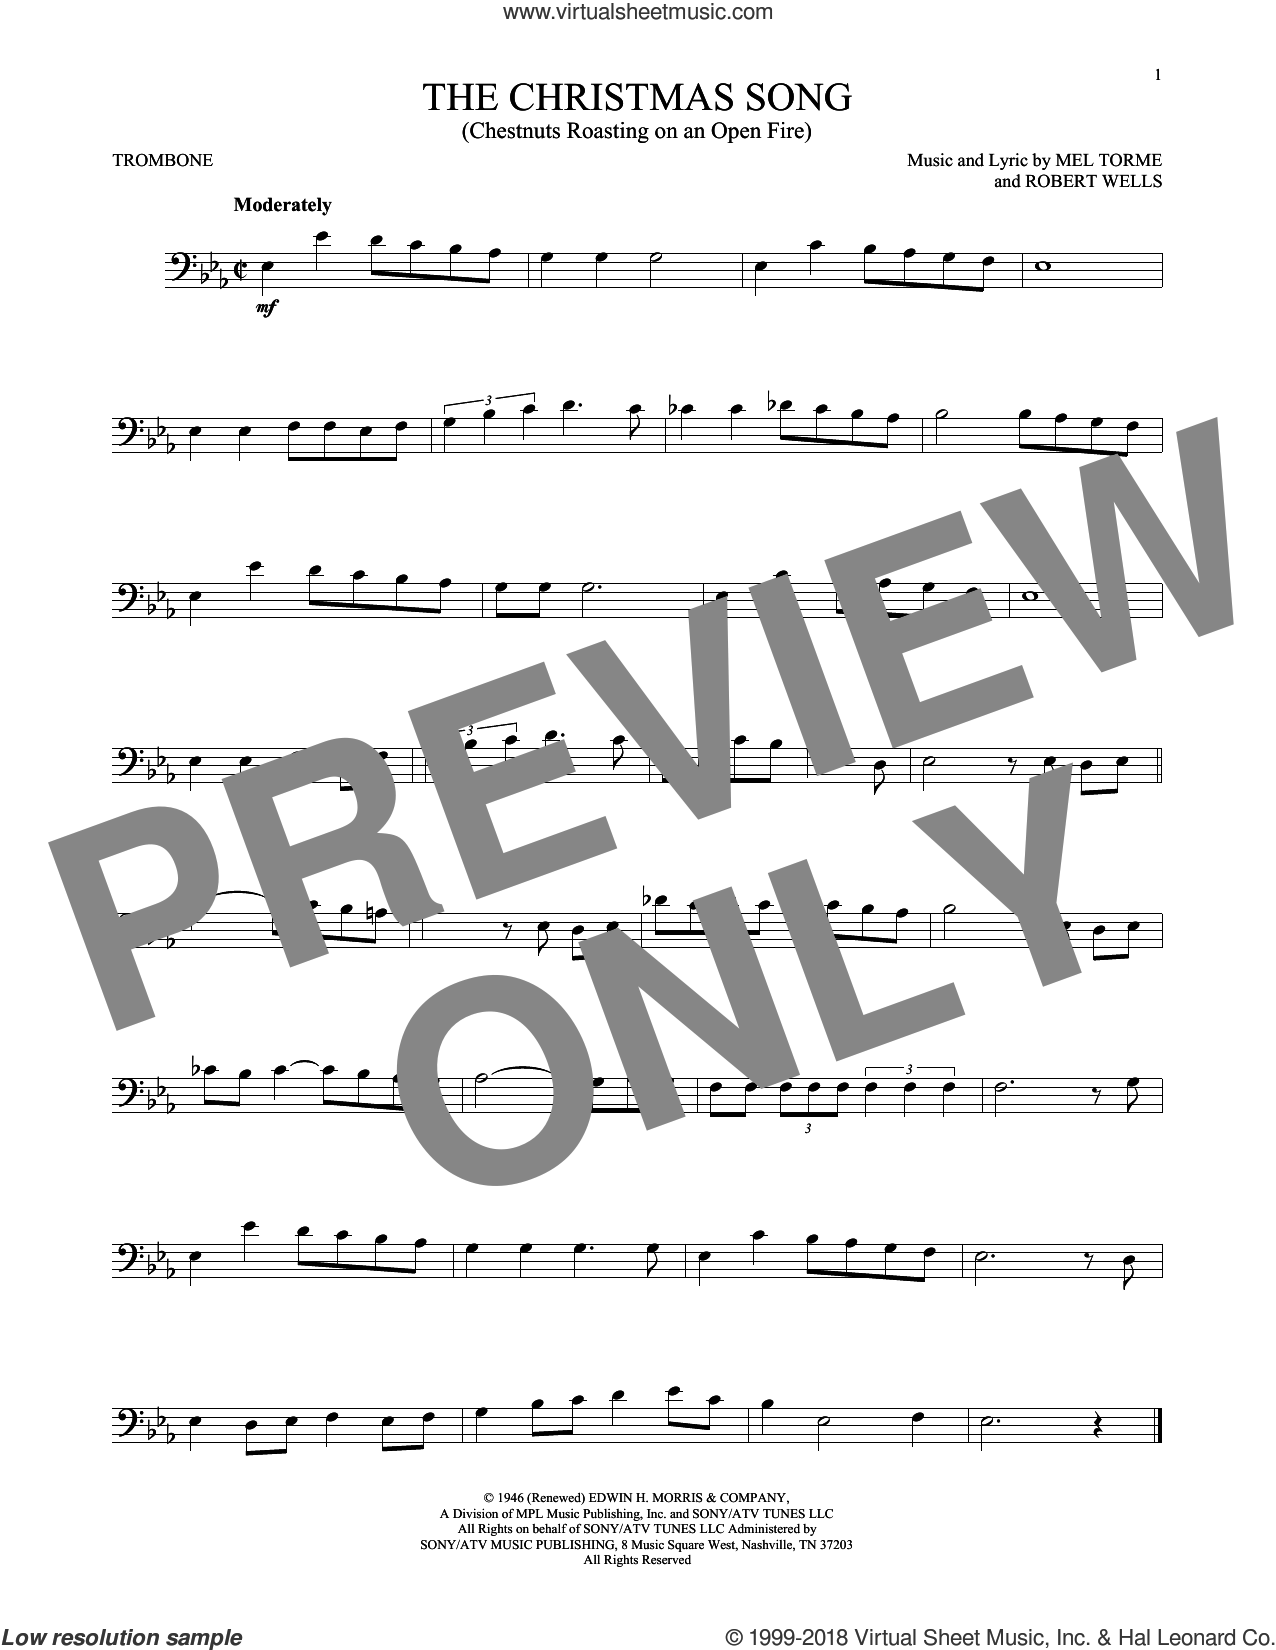 The Christmas Song (Chestnuts Roasting On An Open Fire) sheet music for trombone solo by Mel Torme and Robert Wells, intermediate skill level